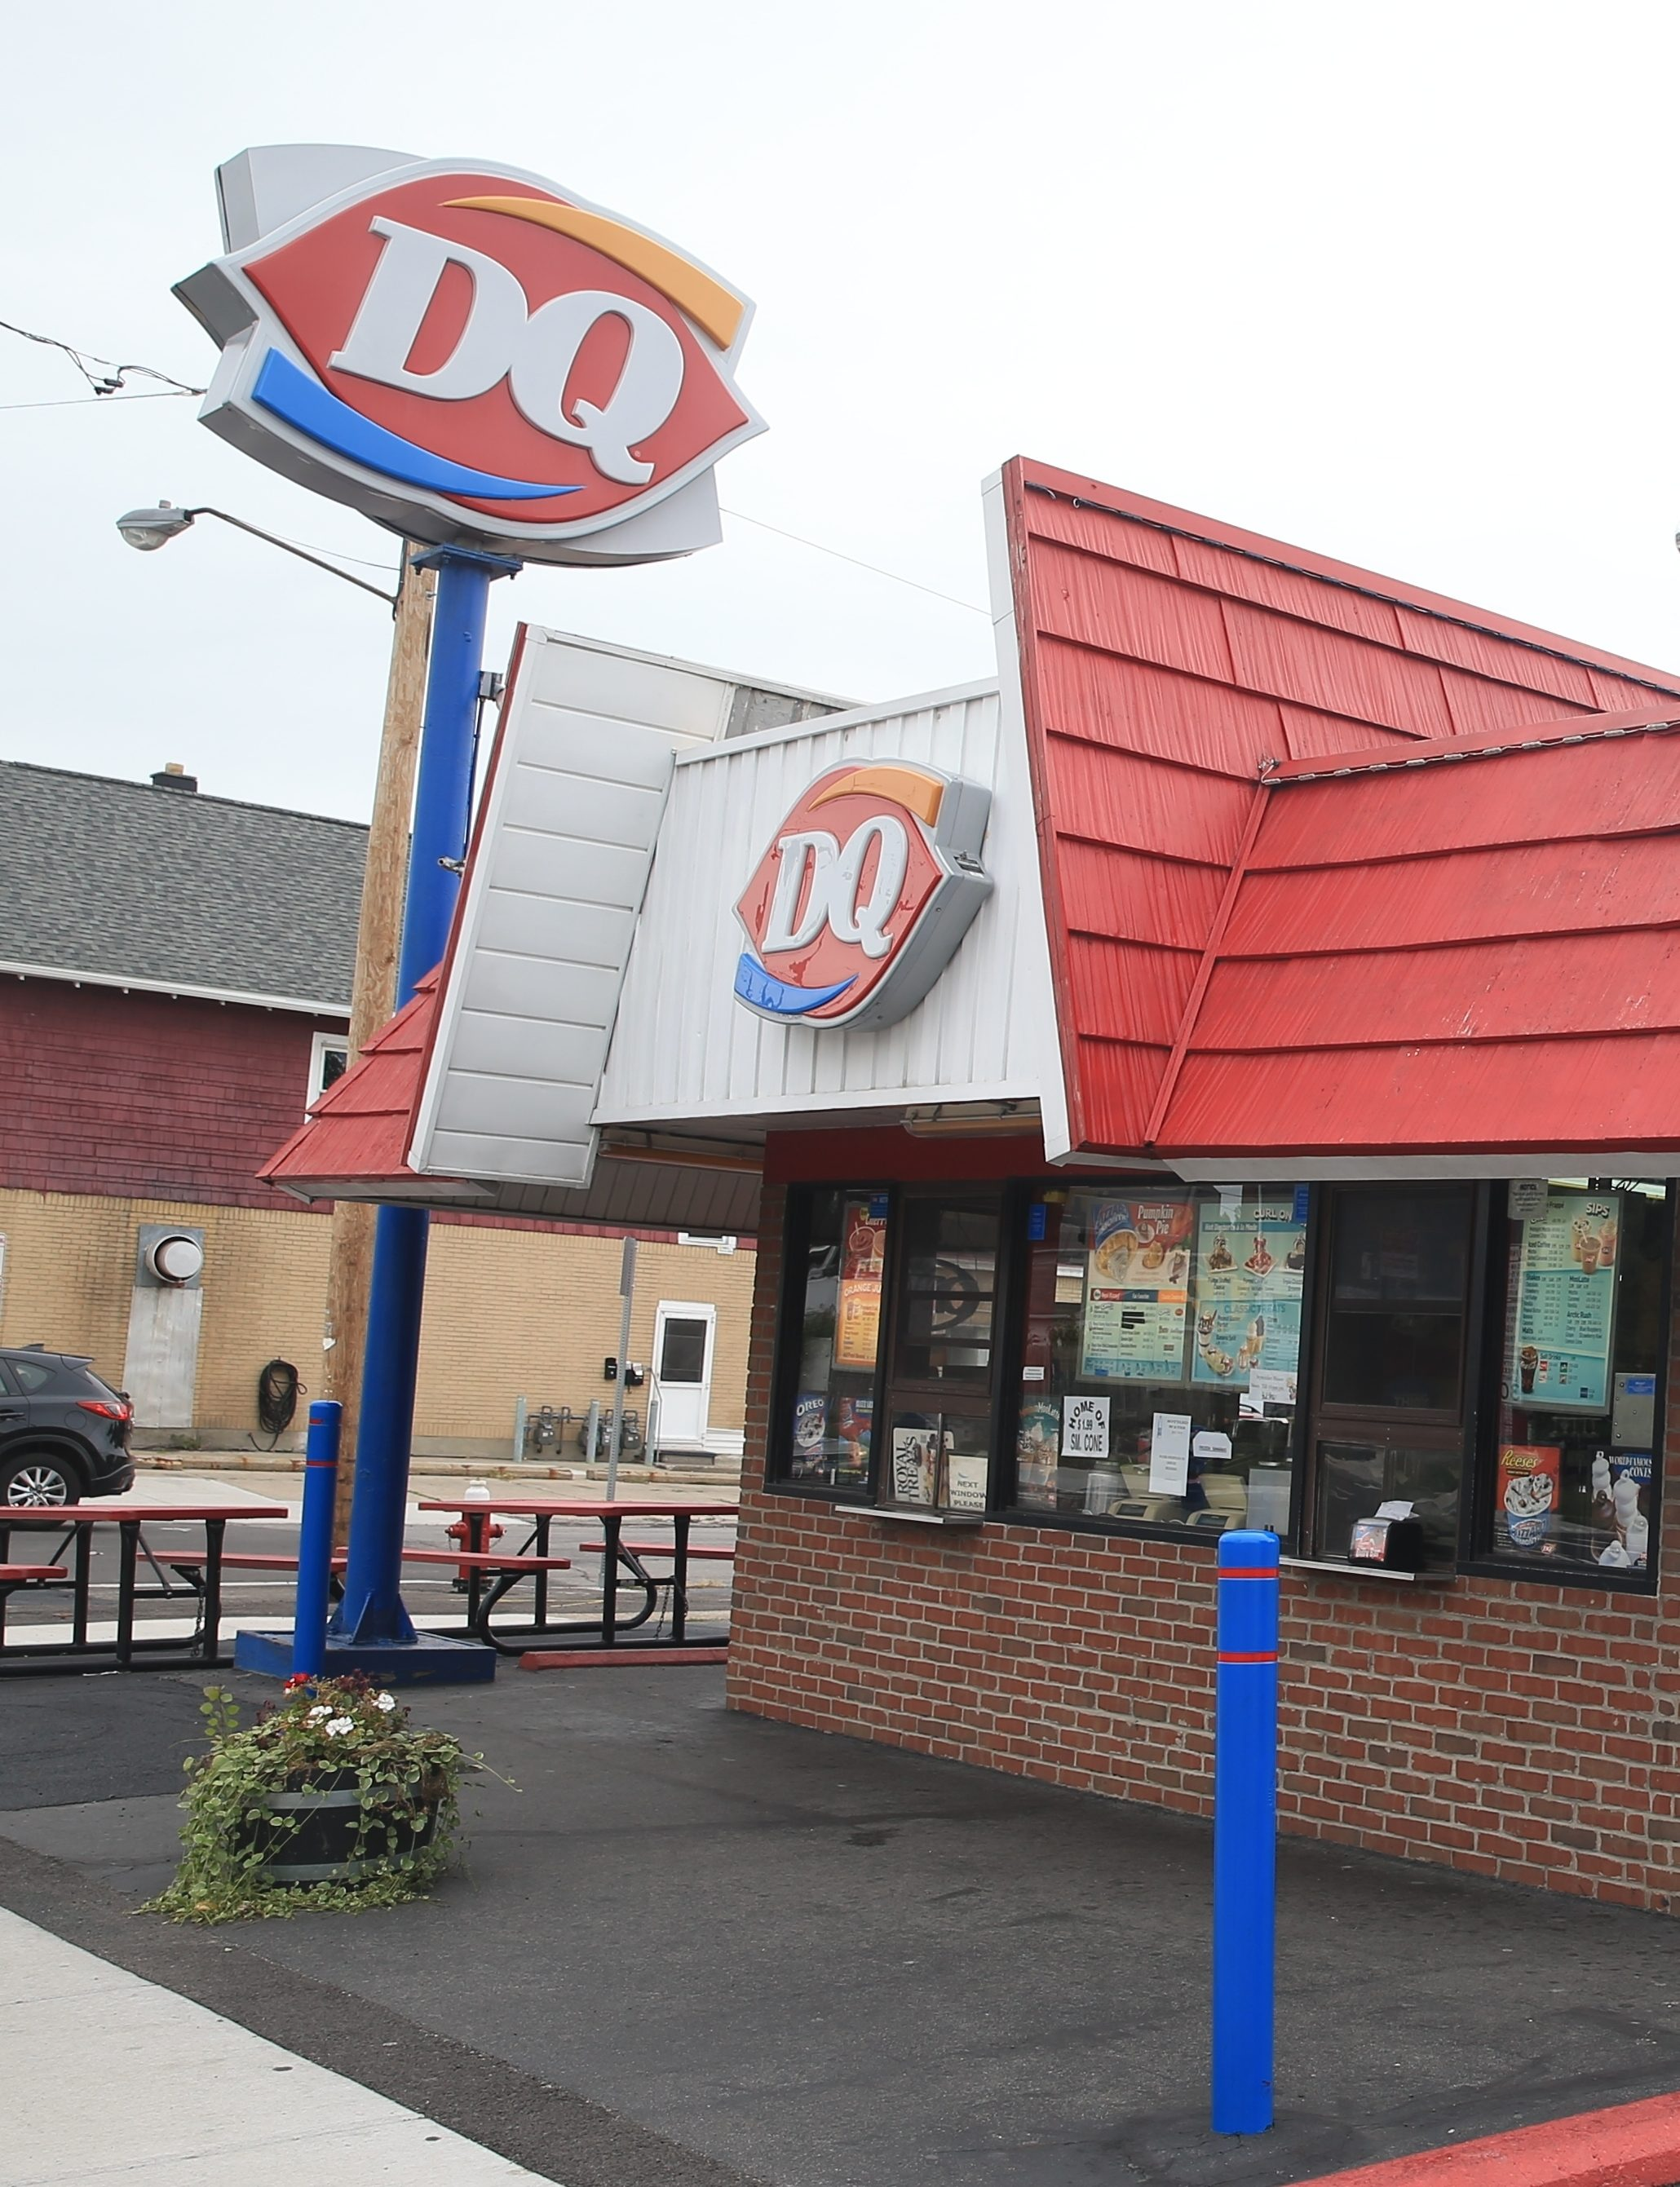 Dairy Queen on Kenmore Avenue in the Town of Tonawanda. The restaurant chain is making a concerted effort to increase the number of stores it has in Buffalo. It wants to add up to 100 Grill & Chill shops in New York State over the next 10 years.   DQ in New York  Western New York now has 40 percent of the DQ franchises located in the state.  (News file photo)